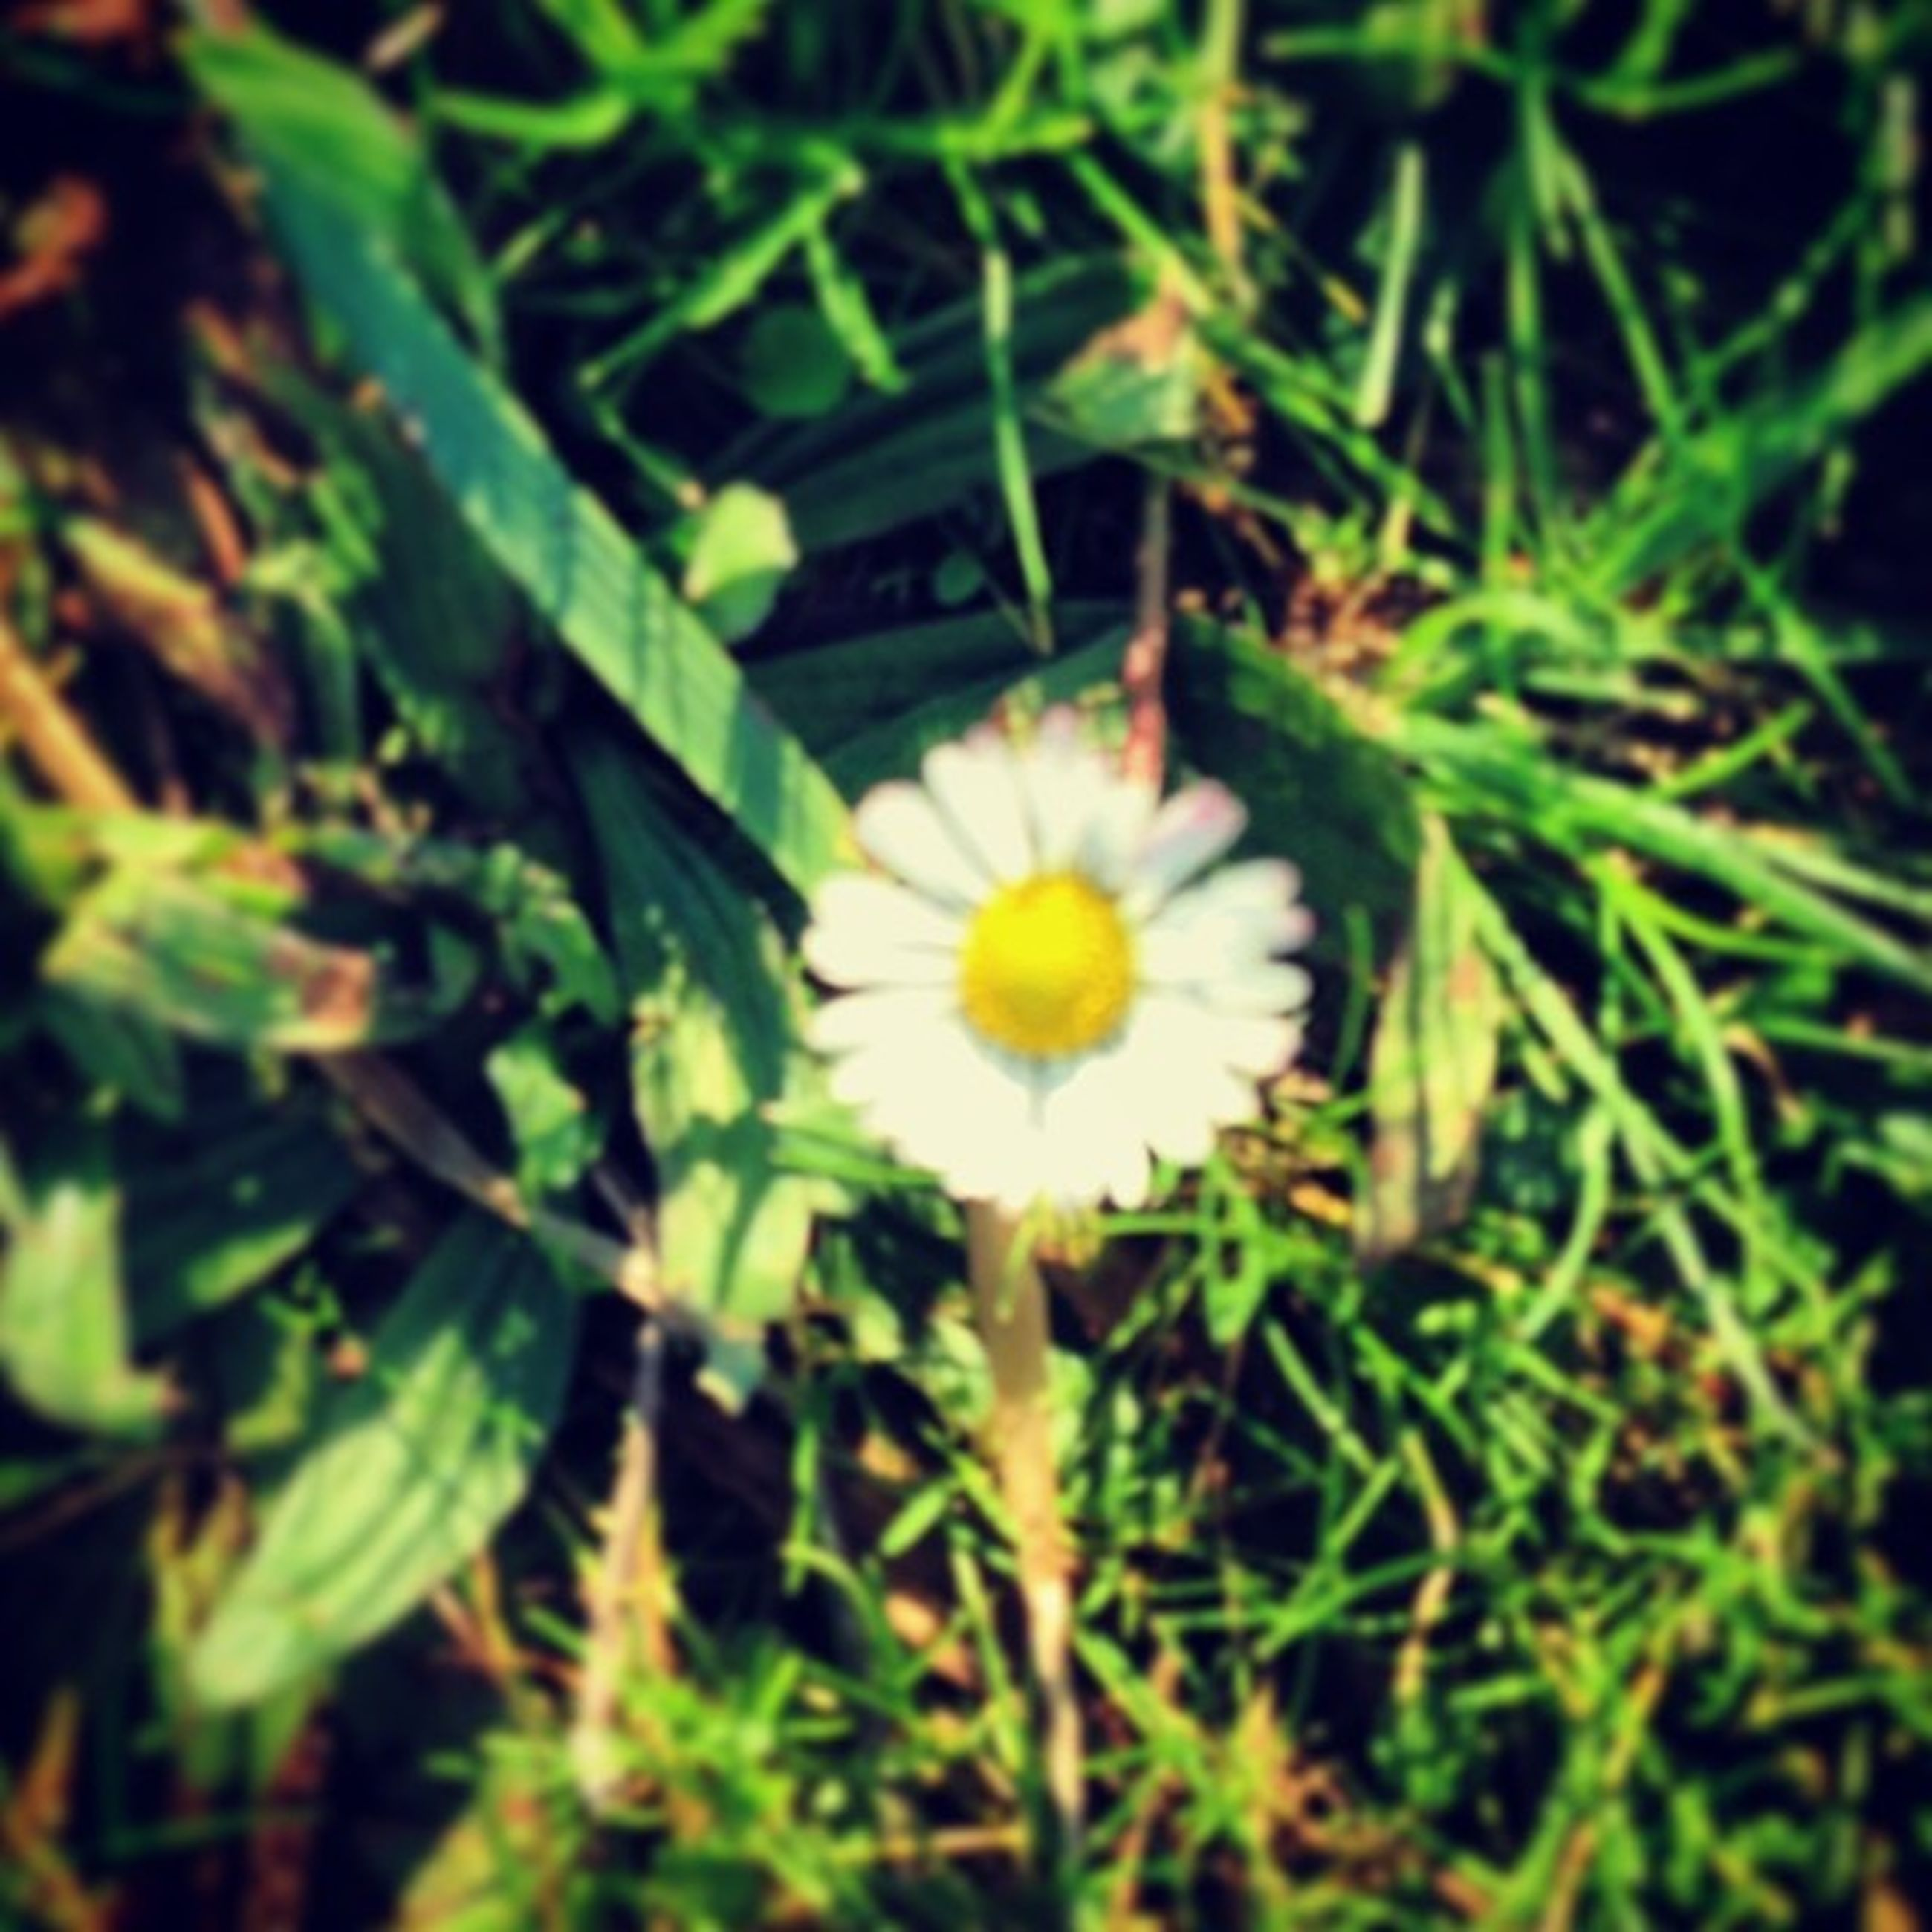 flower, freshness, fragility, growth, petal, flower head, beauty in nature, yellow, plant, blooming, single flower, nature, daisy, close-up, white color, high angle view, field, in bloom, selective focus, green color